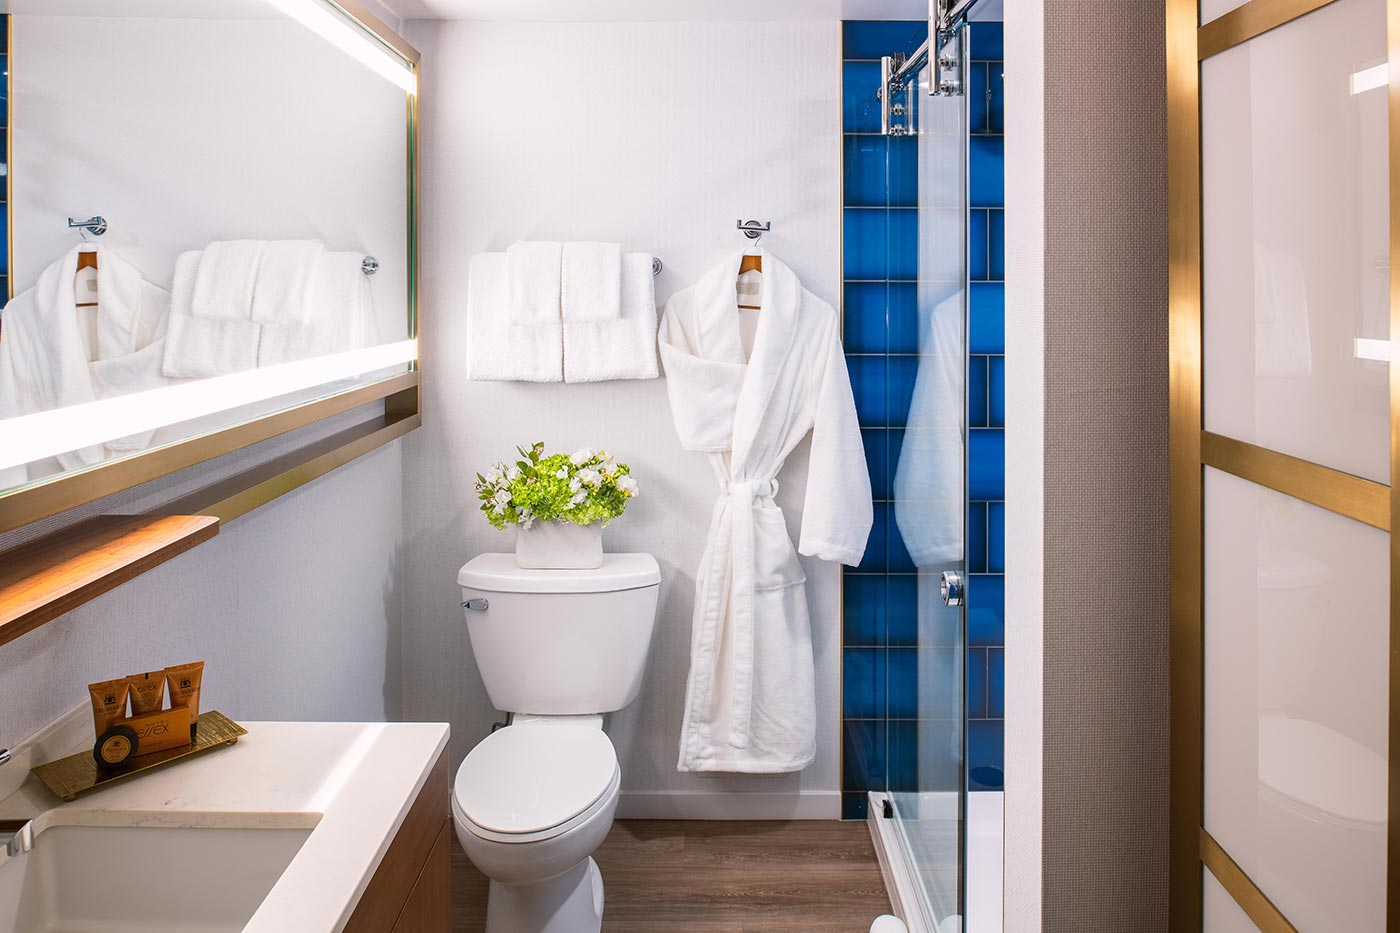 Hotel Essex bathroom with glass shower stall and bathrobe hanging on the wall